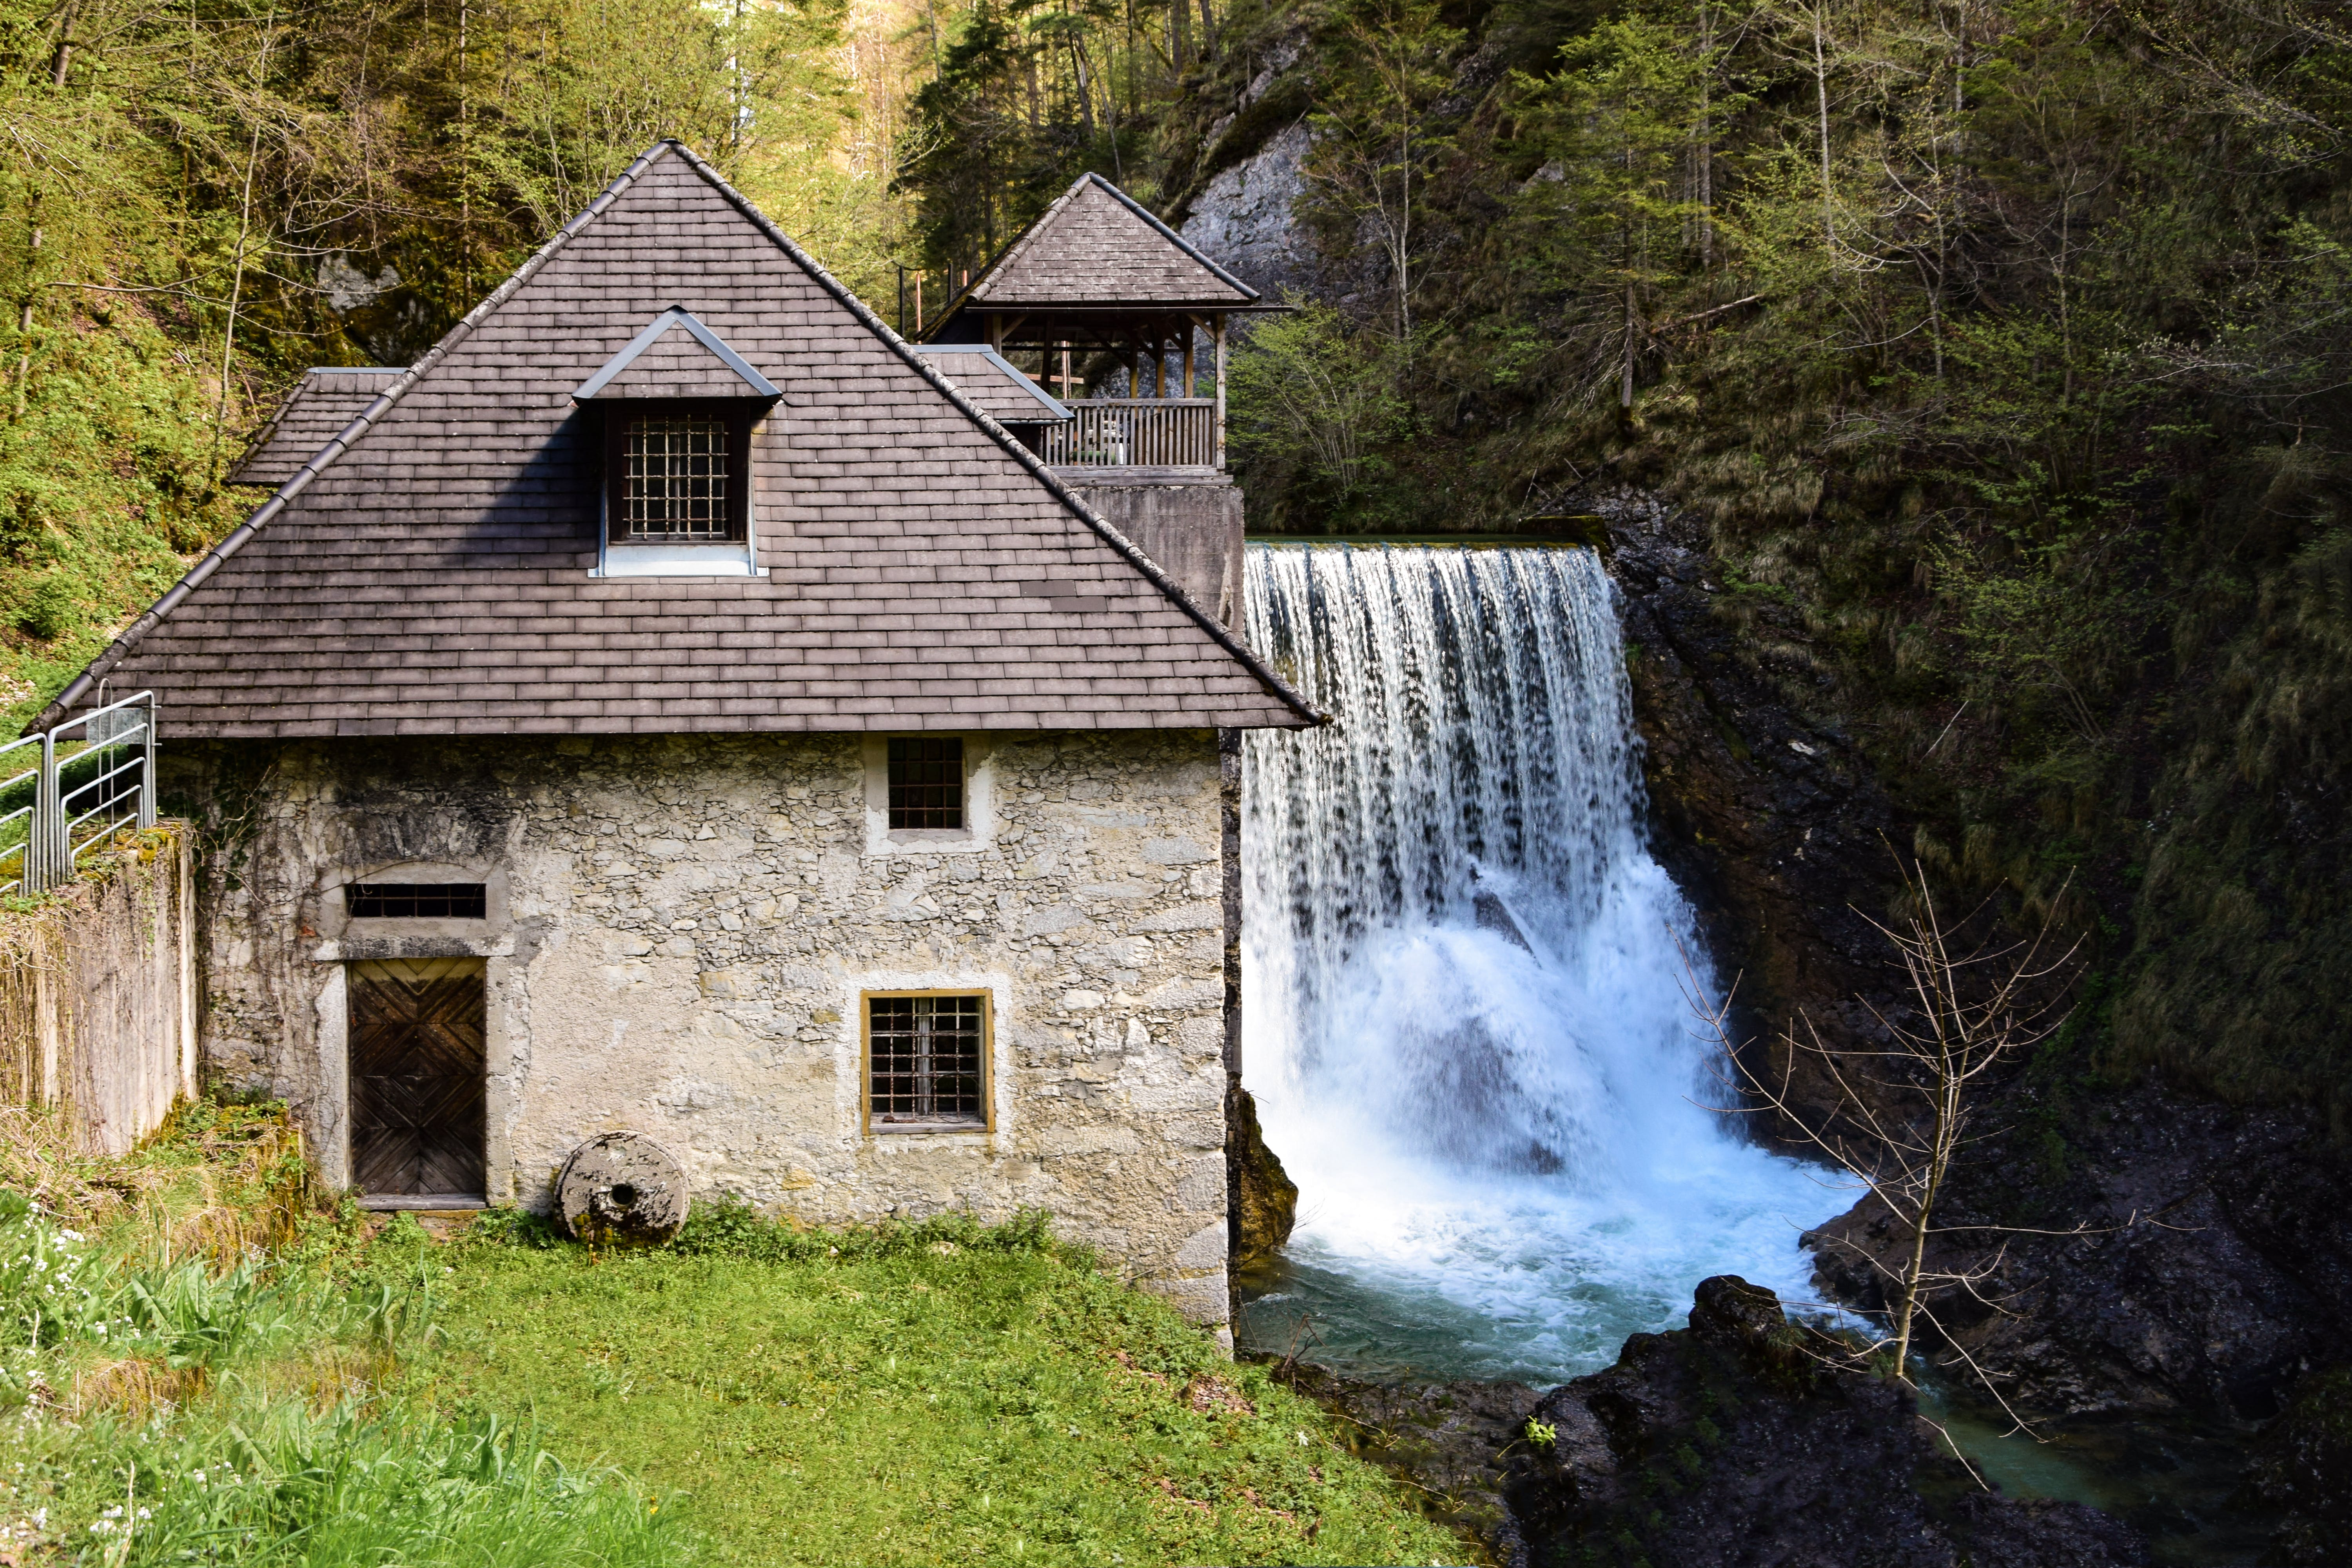 Gray House and Water Dam